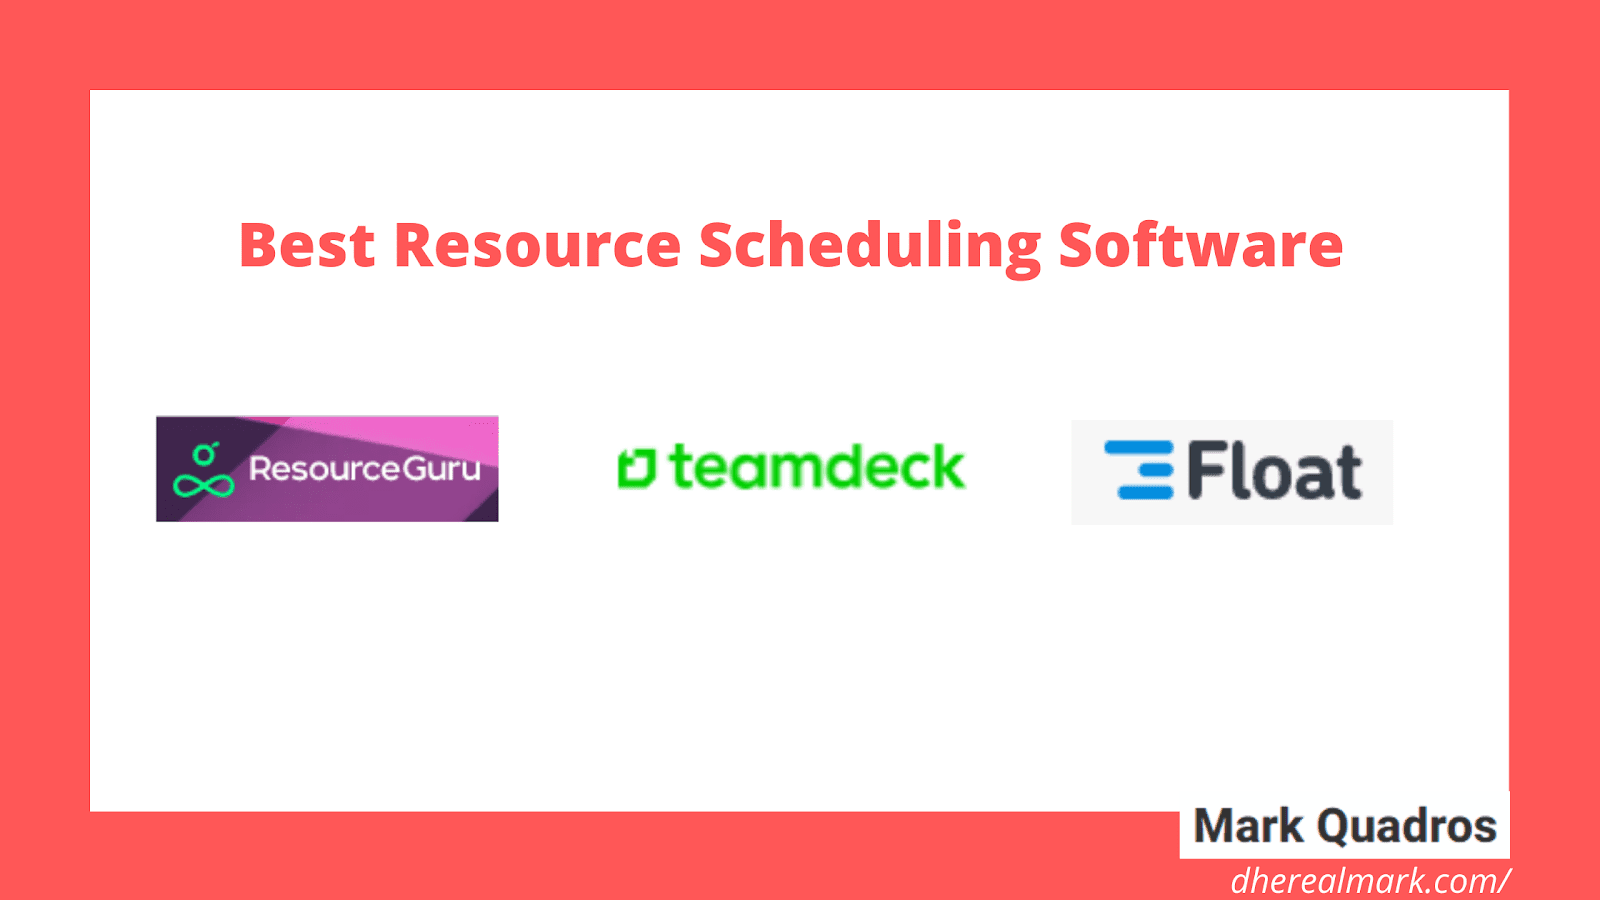 Best Resource Scheduling Software